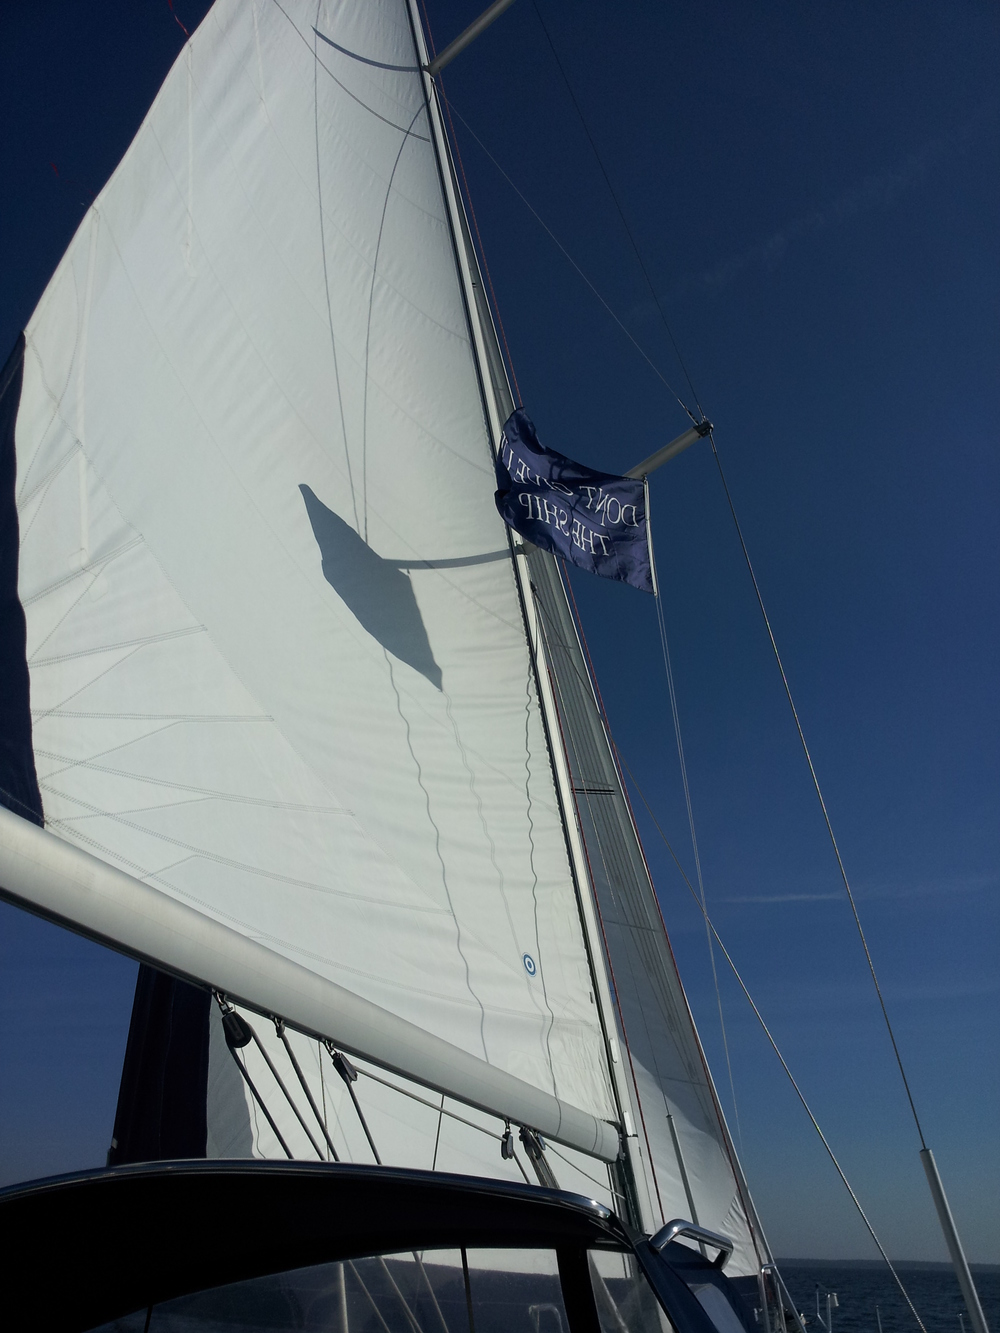 Main sail on a very good day (minus the not exactly proper flag etiquette).